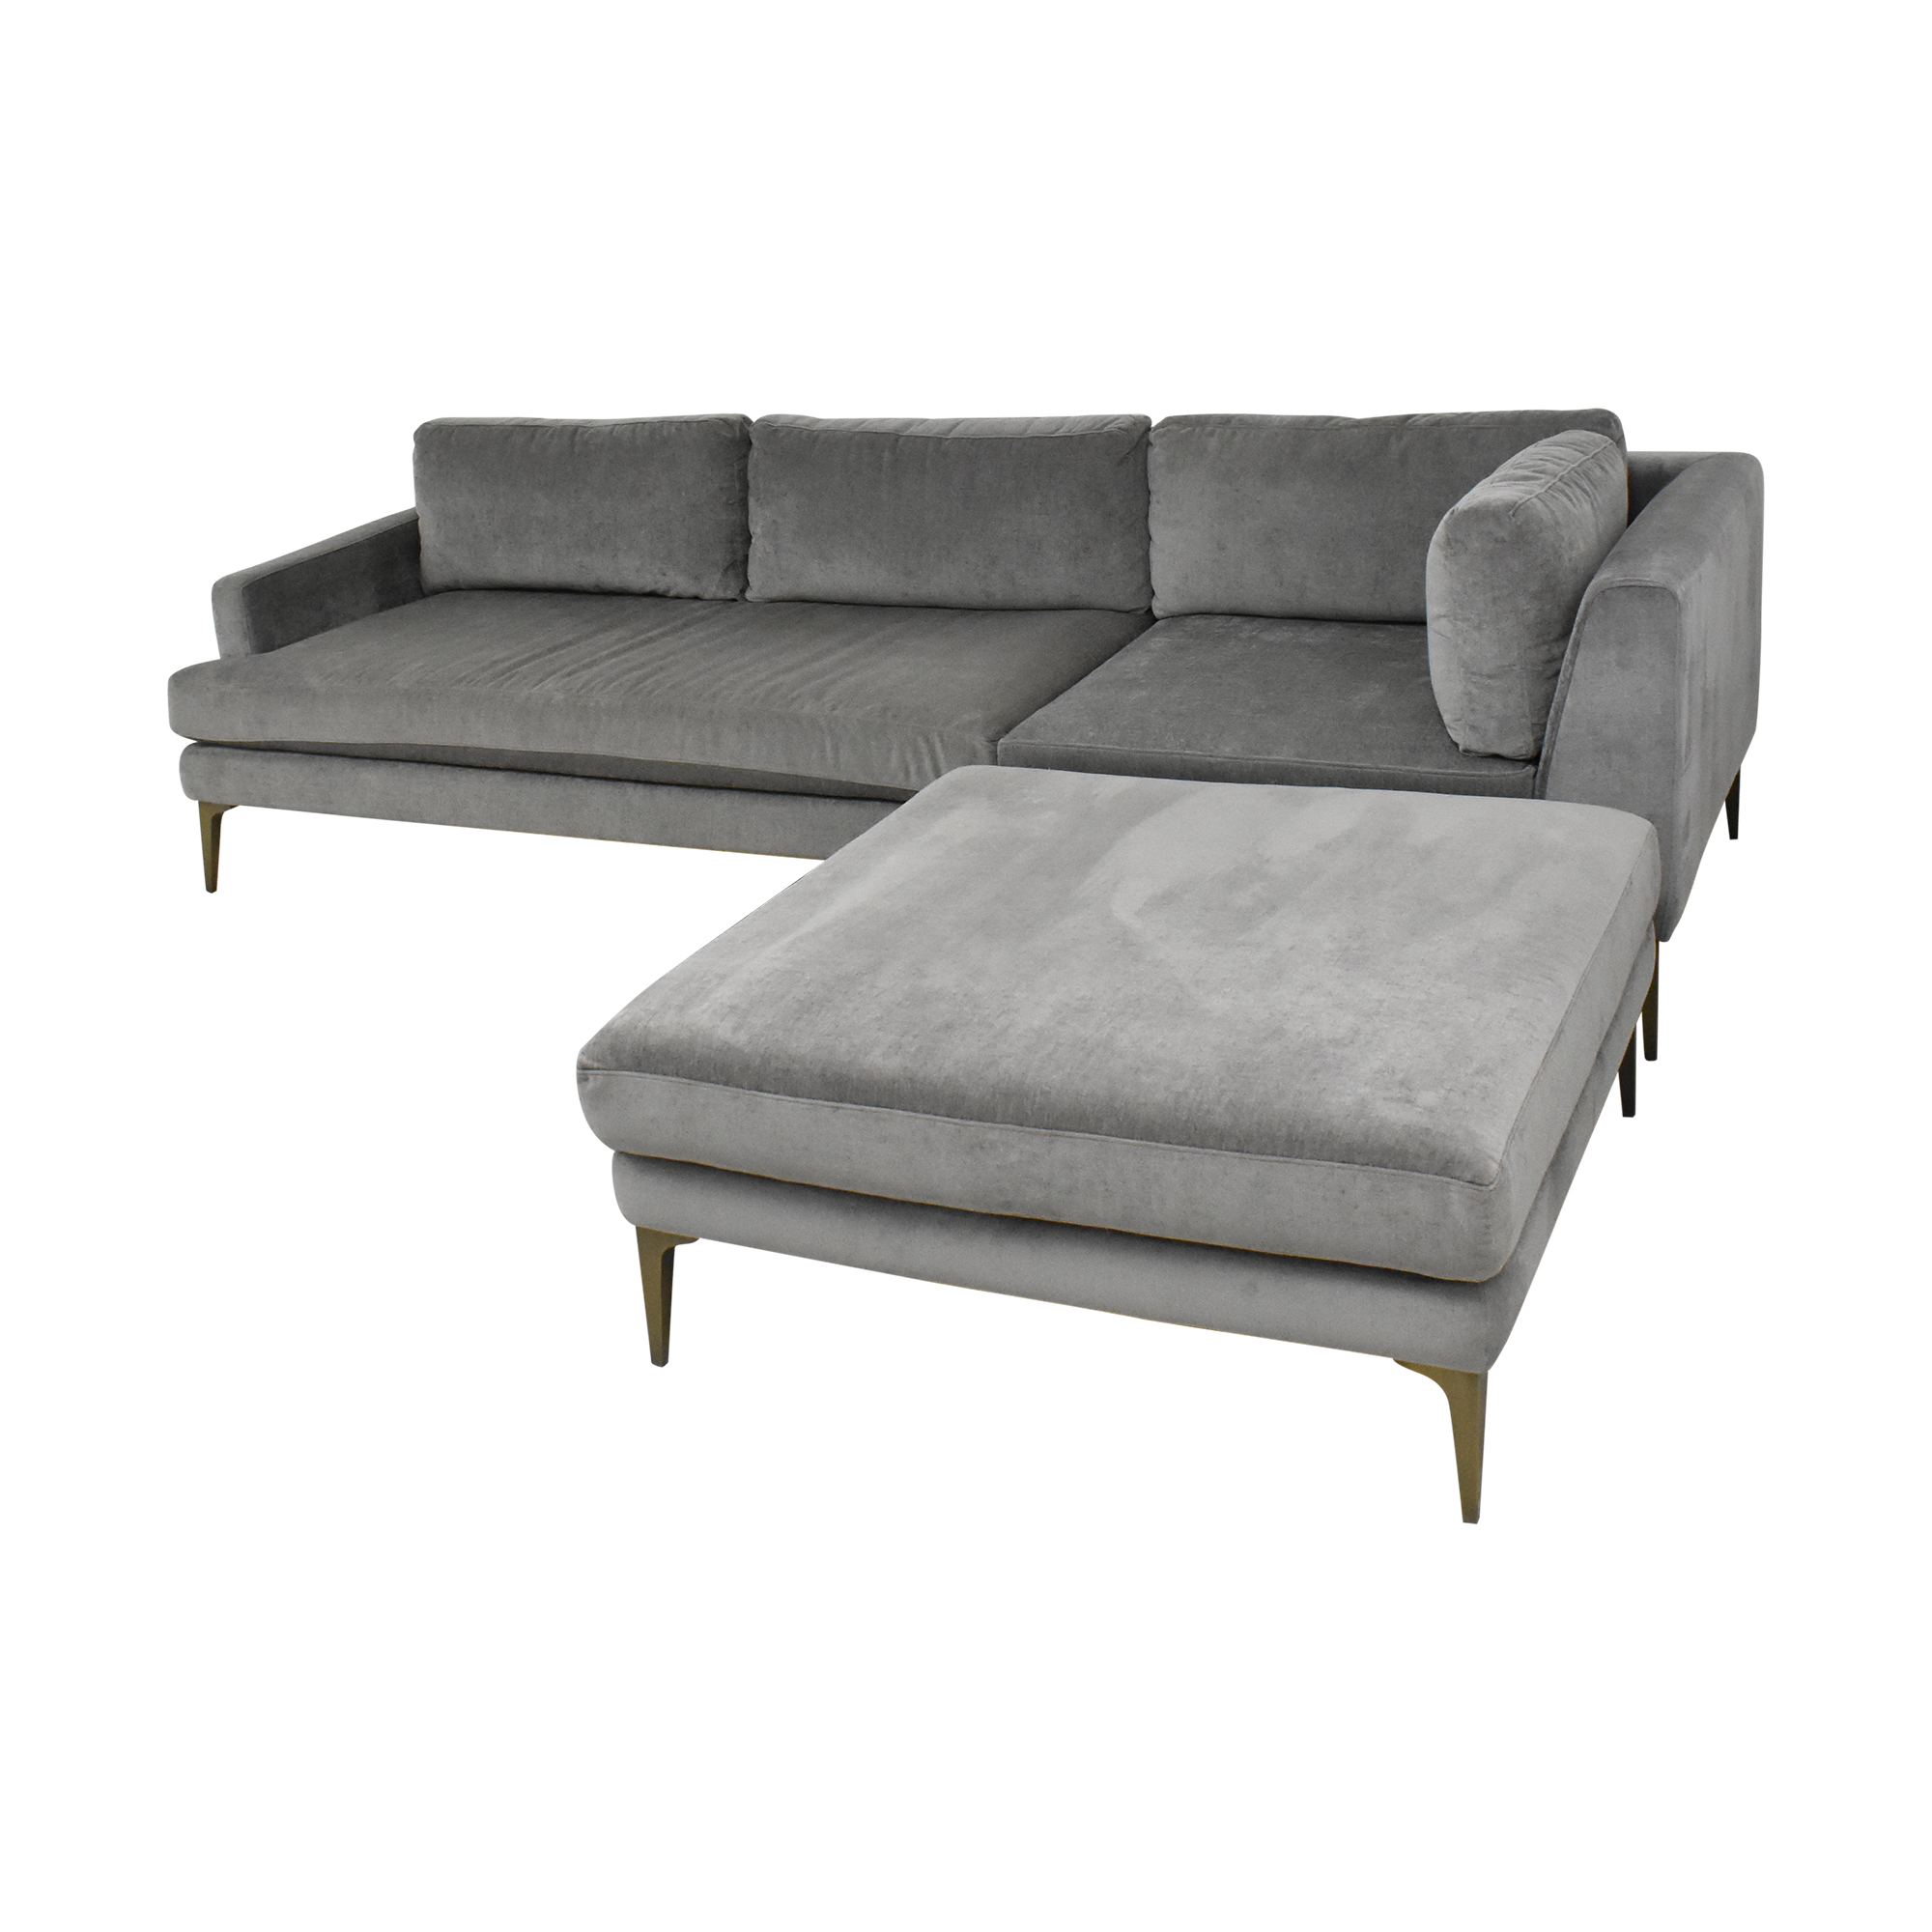 West Elm Andes Three Piece Chaise Sectional / Sofas